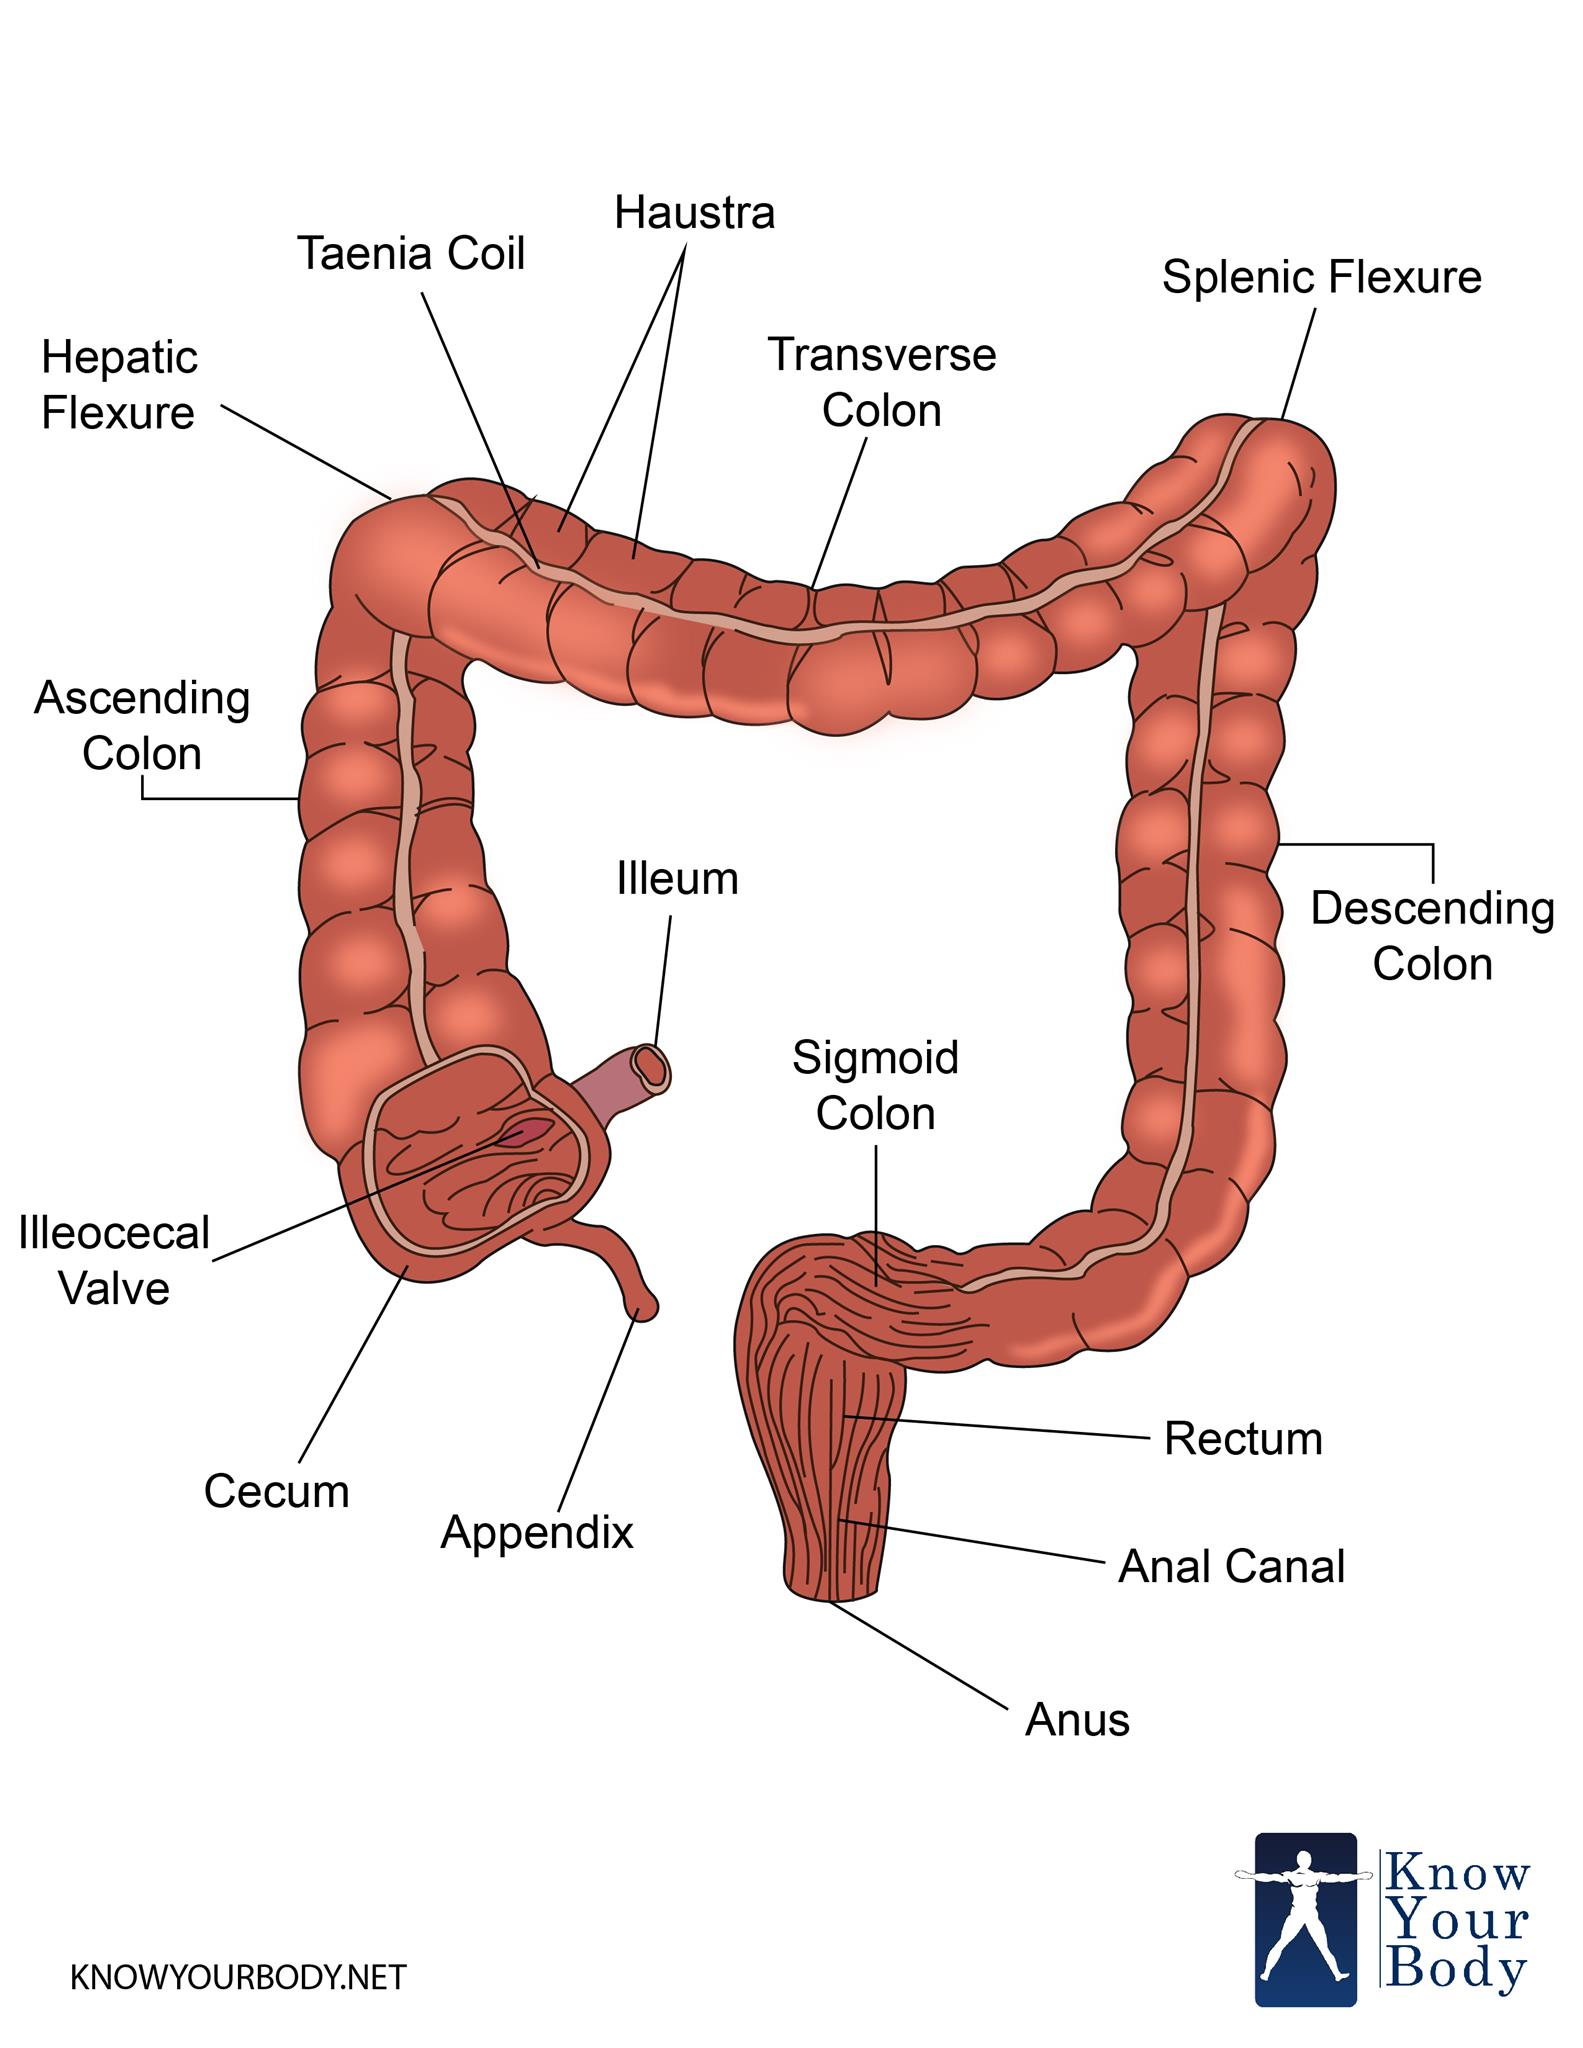 Large Intestine - Function, Parts, Length, Anatomy and FAQs